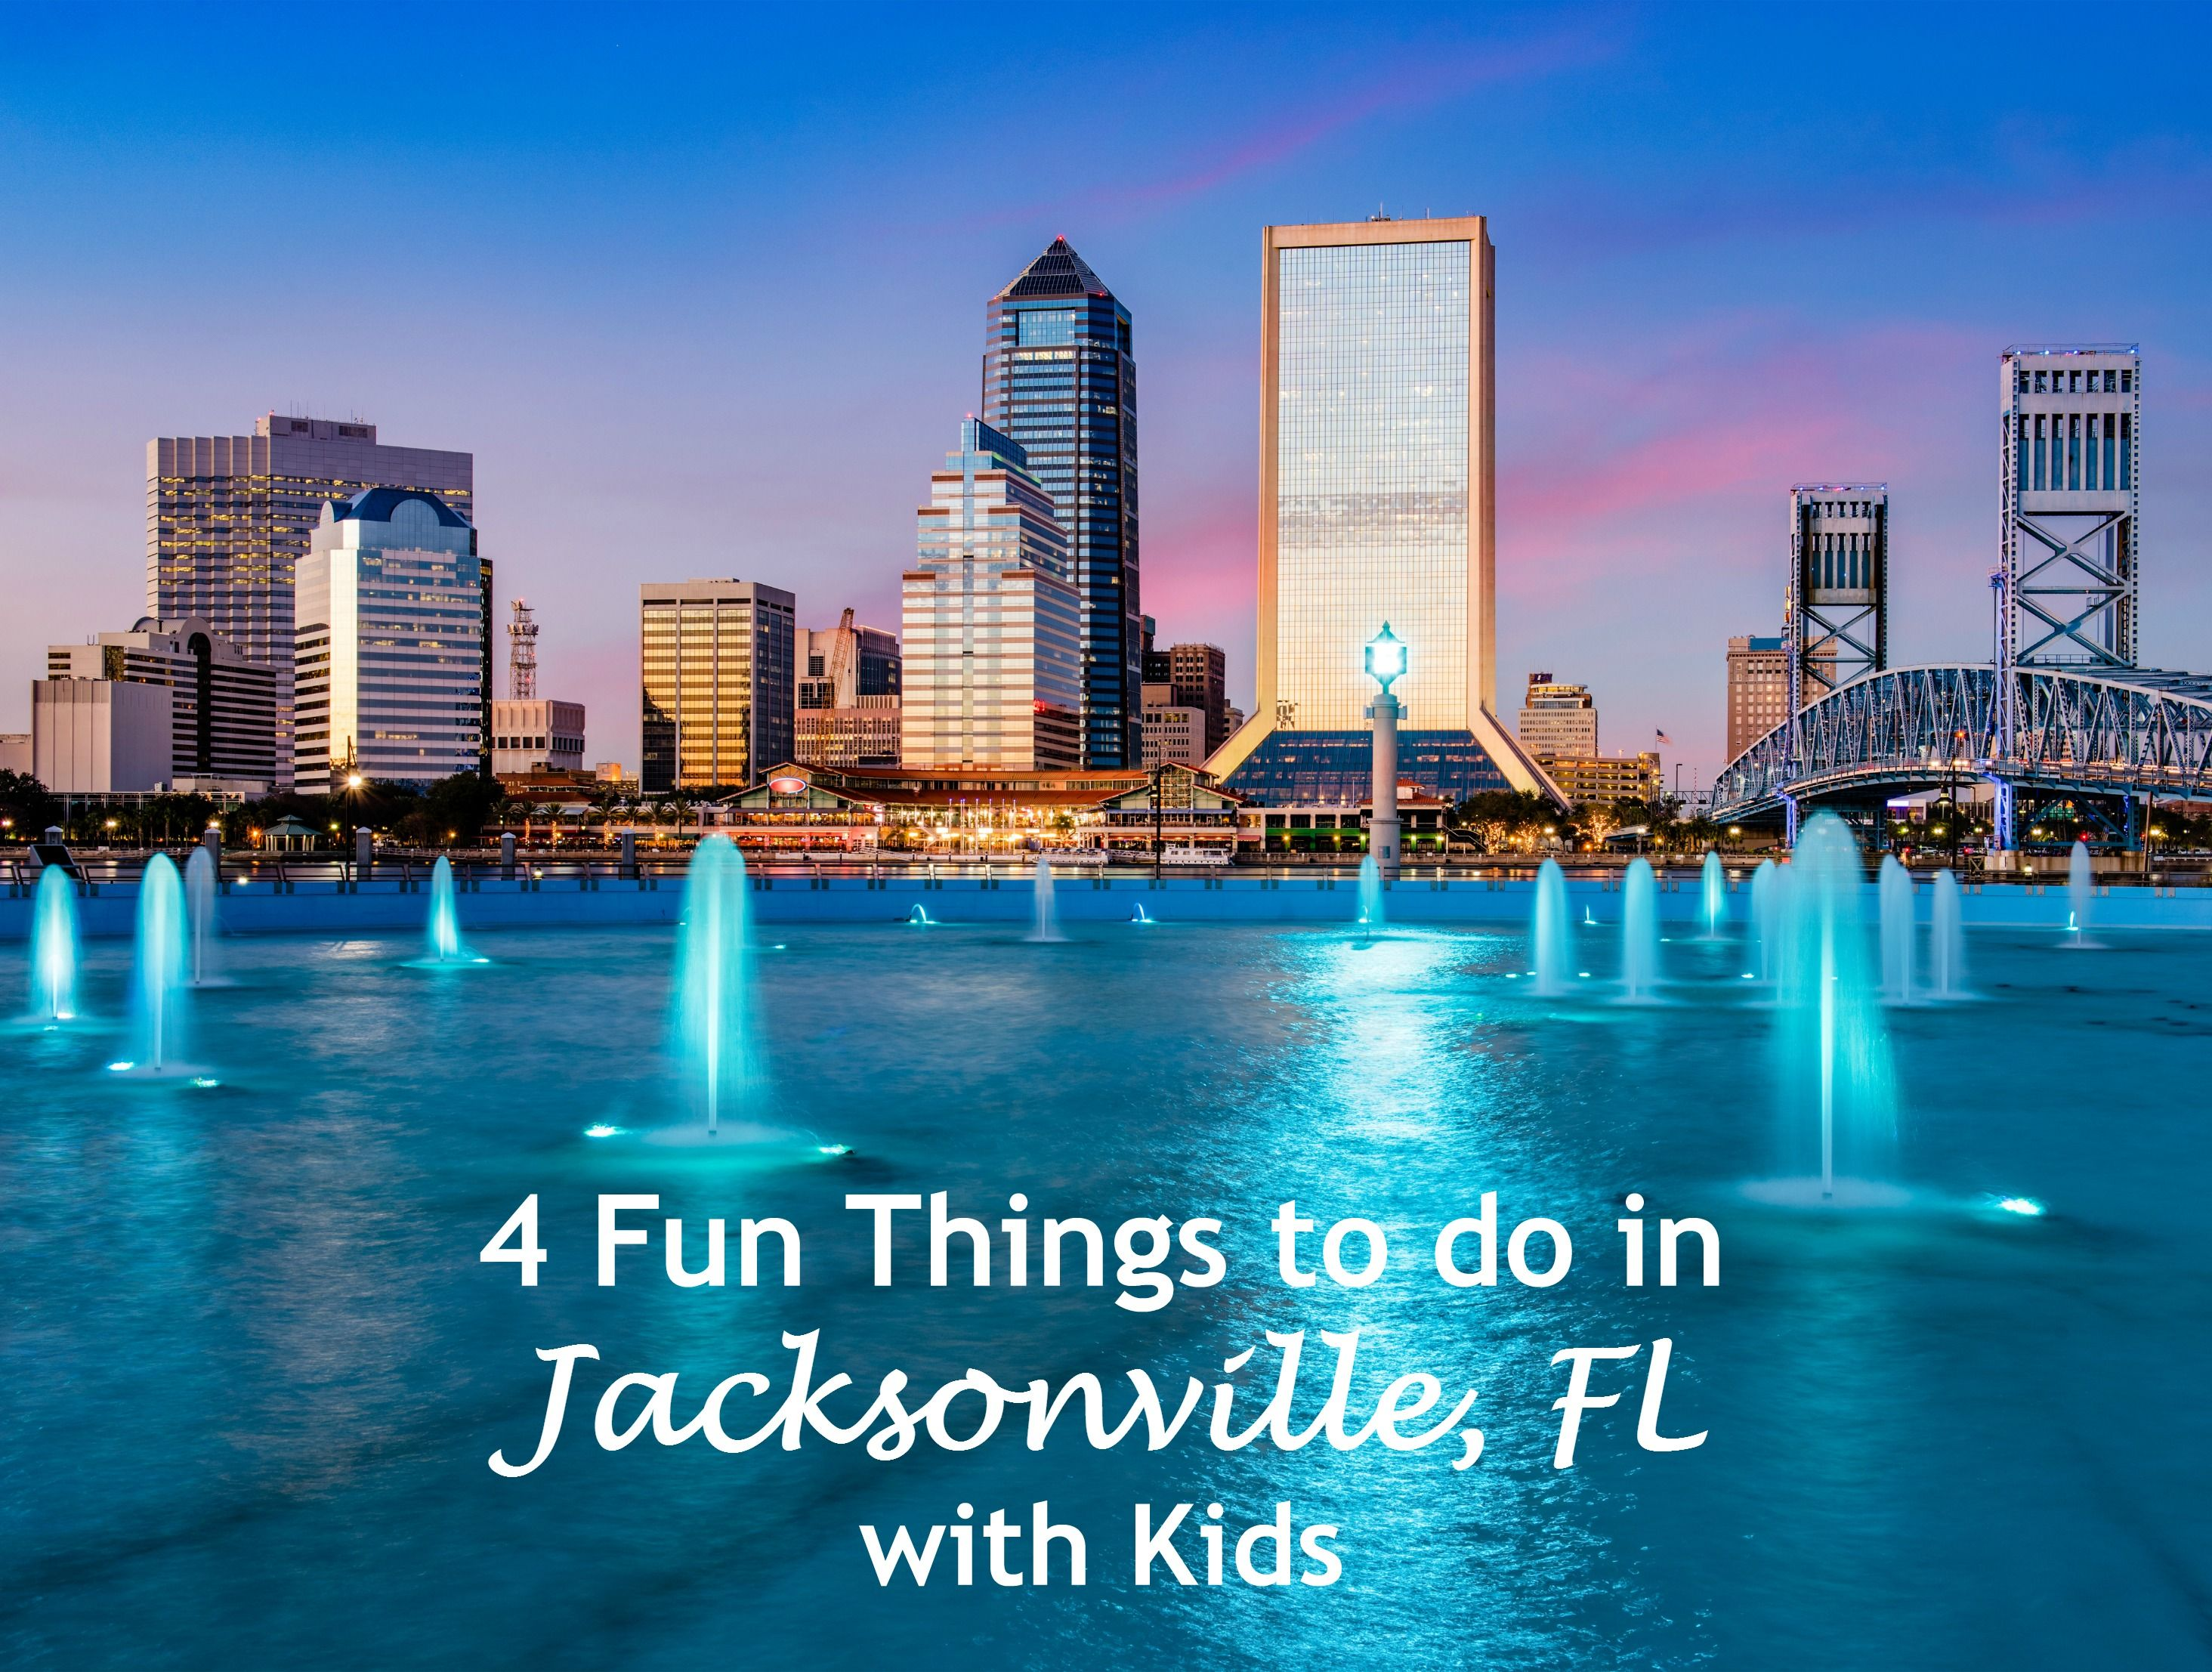 4 Fun Things to do in Jacksonville, FL with Kids Cheap